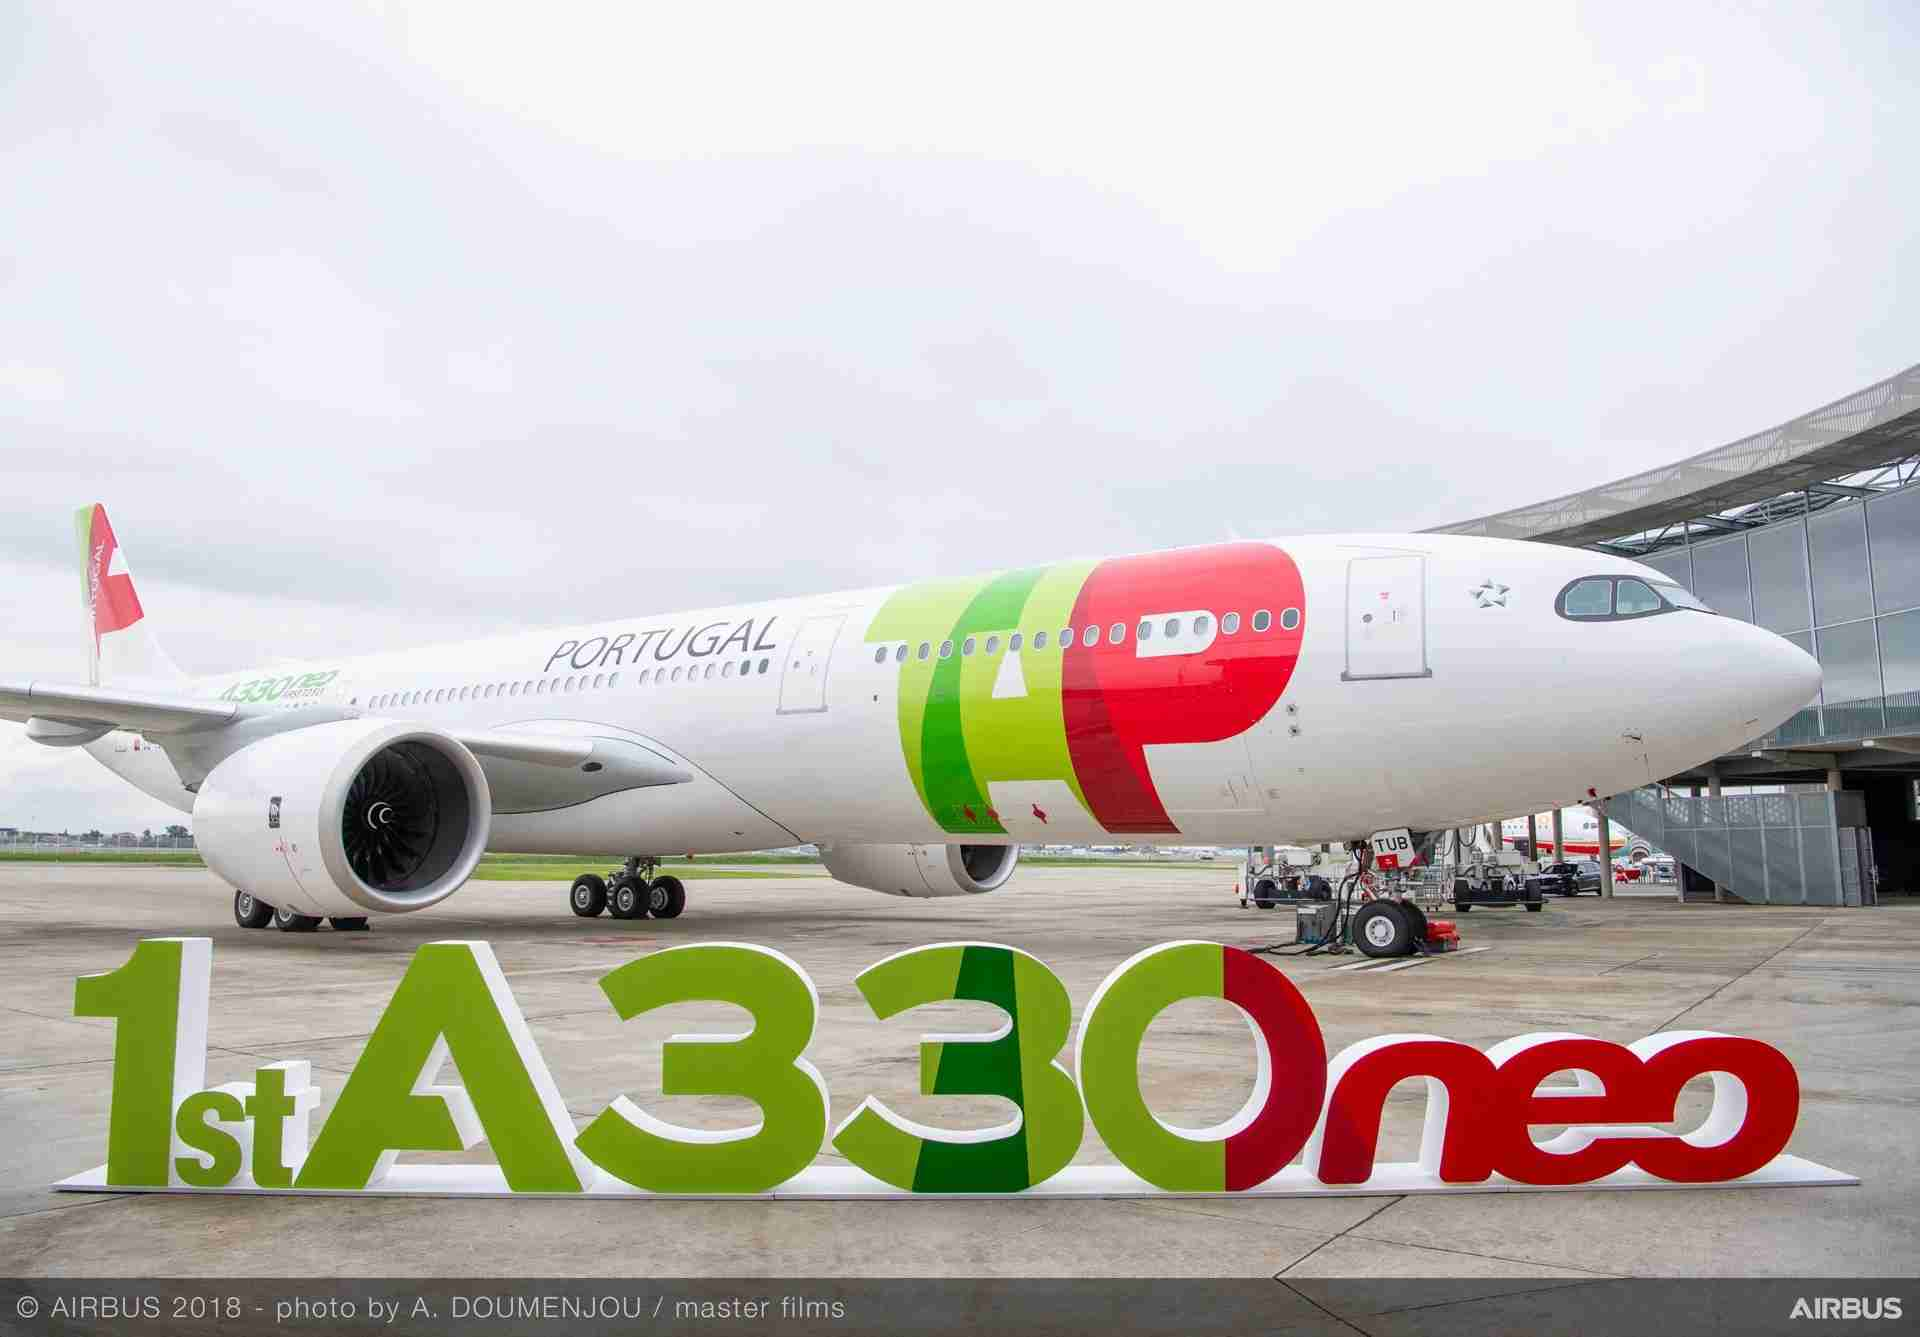 Airbus A330-900 for TAP Air Portugal. Image curtesy of Airbus Photo by A. Documenjou /masterfilms